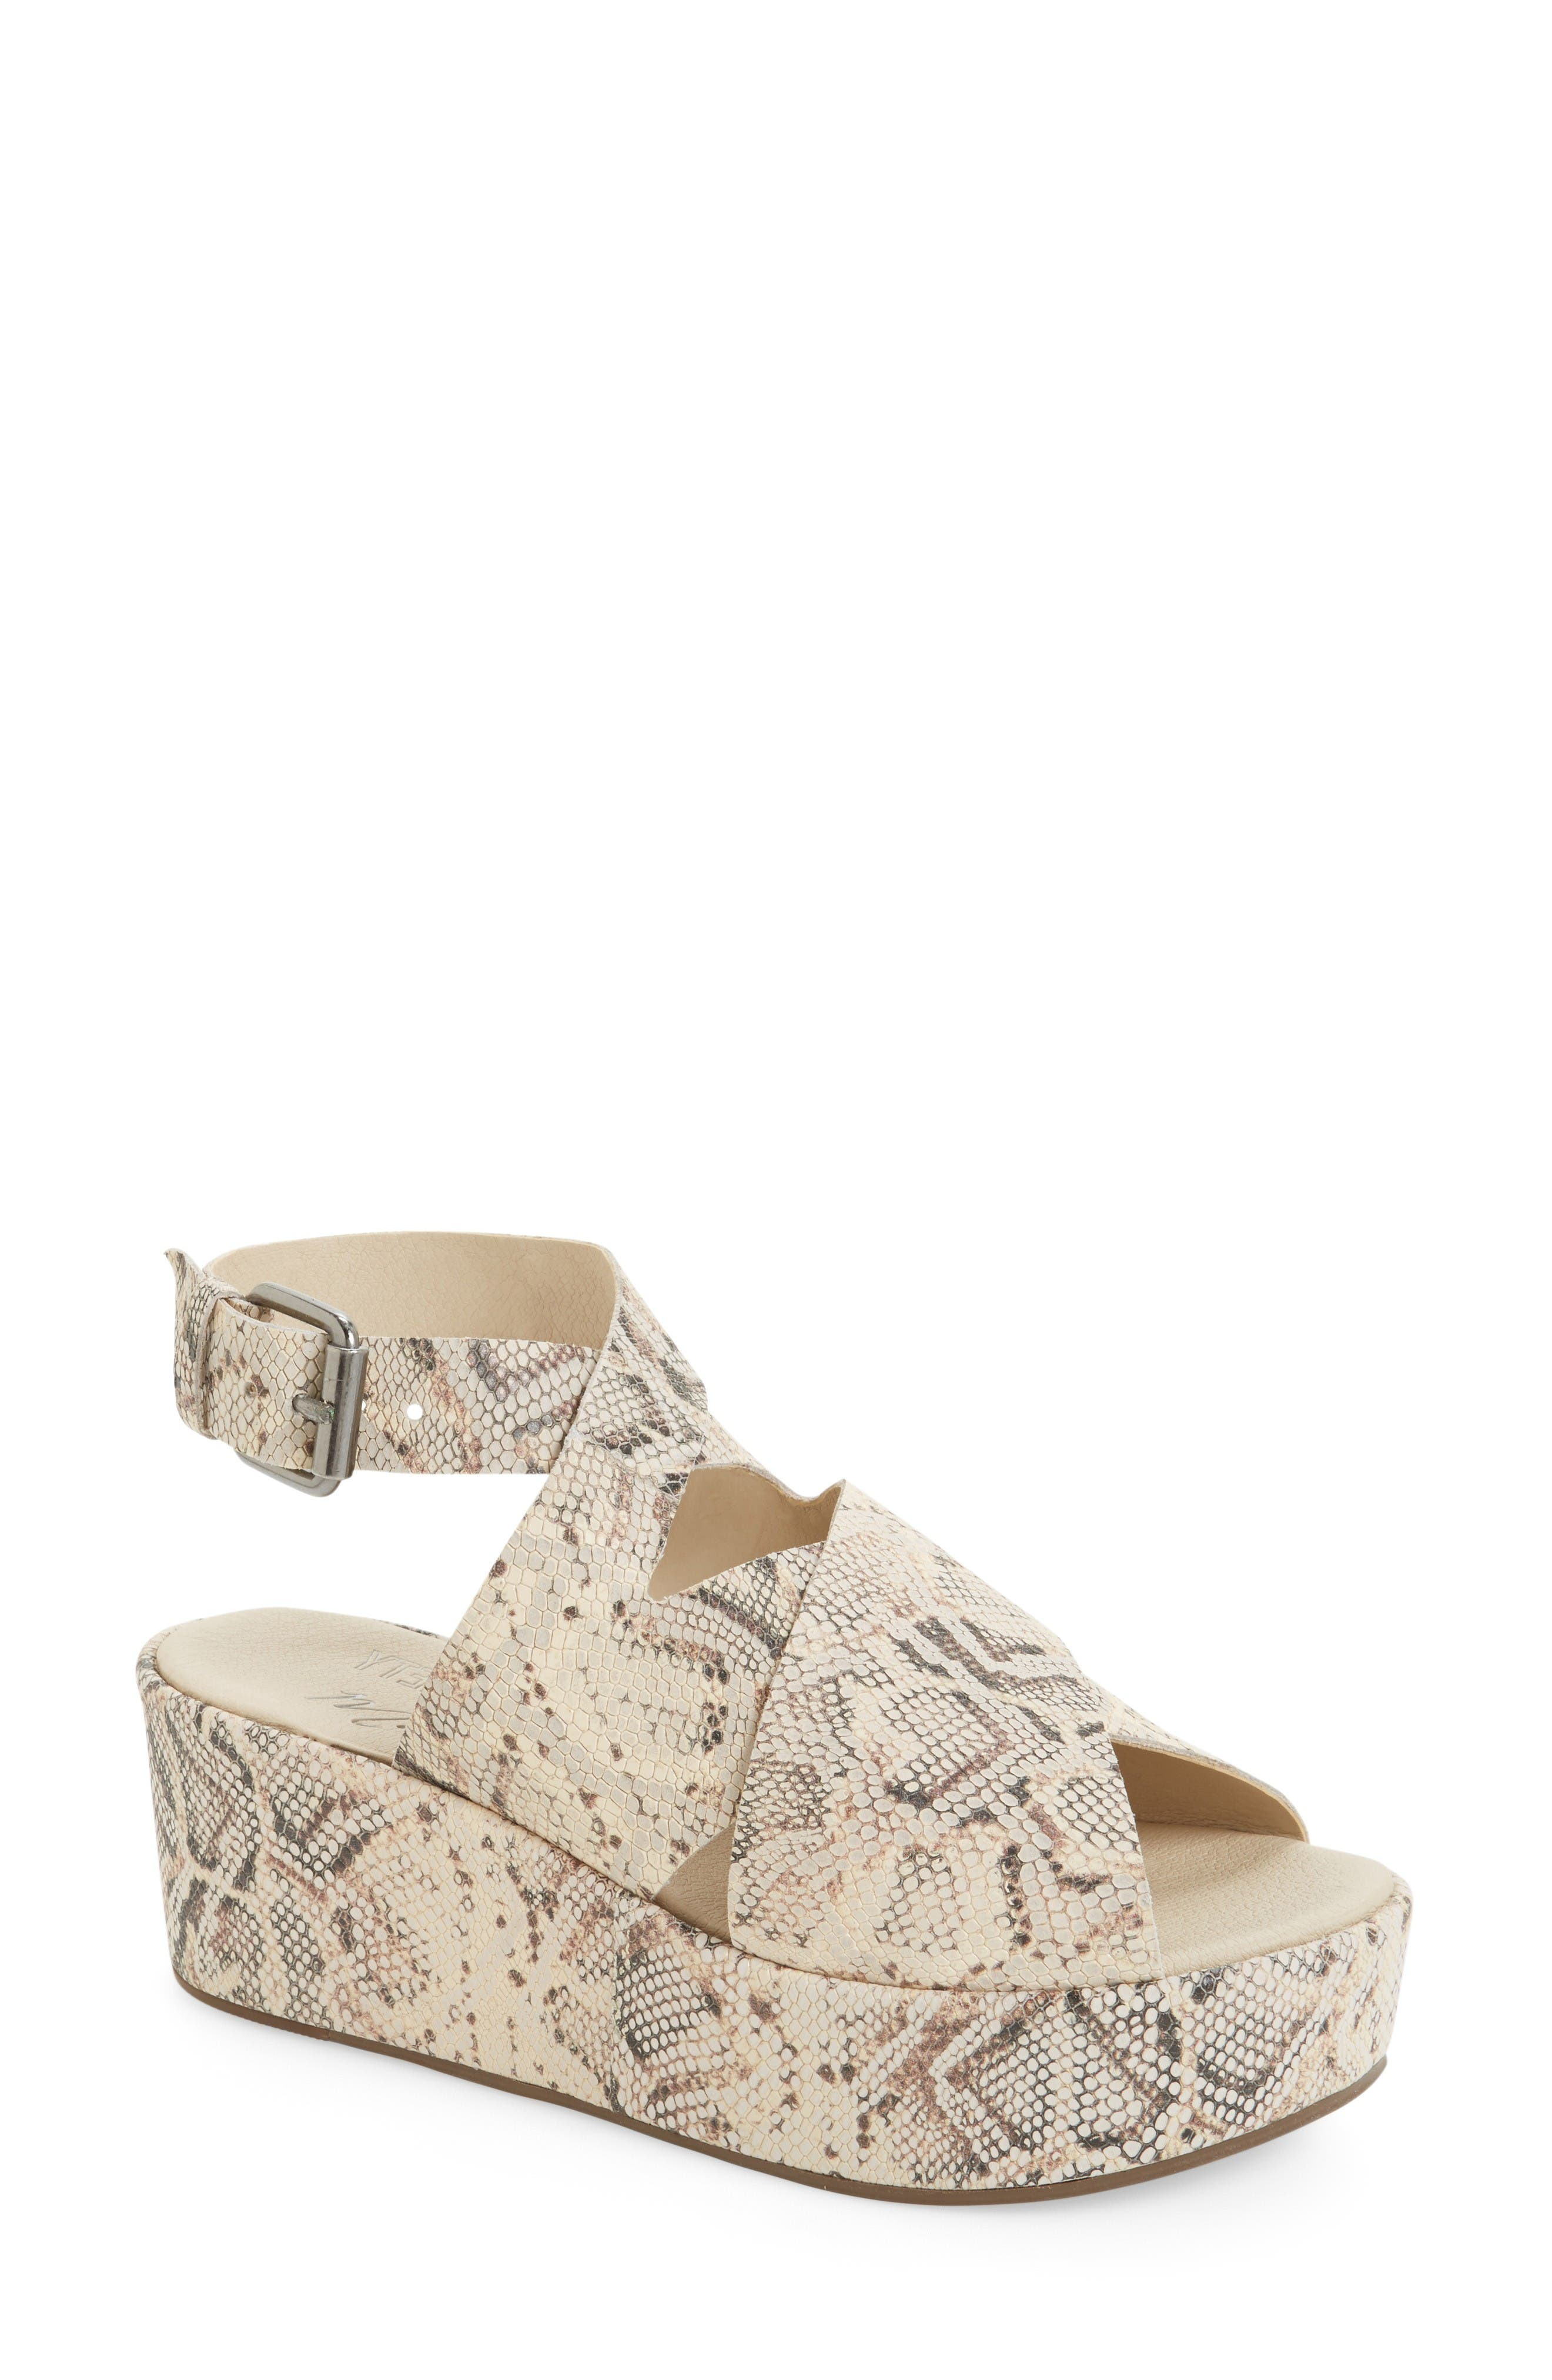 Amuse Society x Matisse Runway Wedge Sandal (Women)